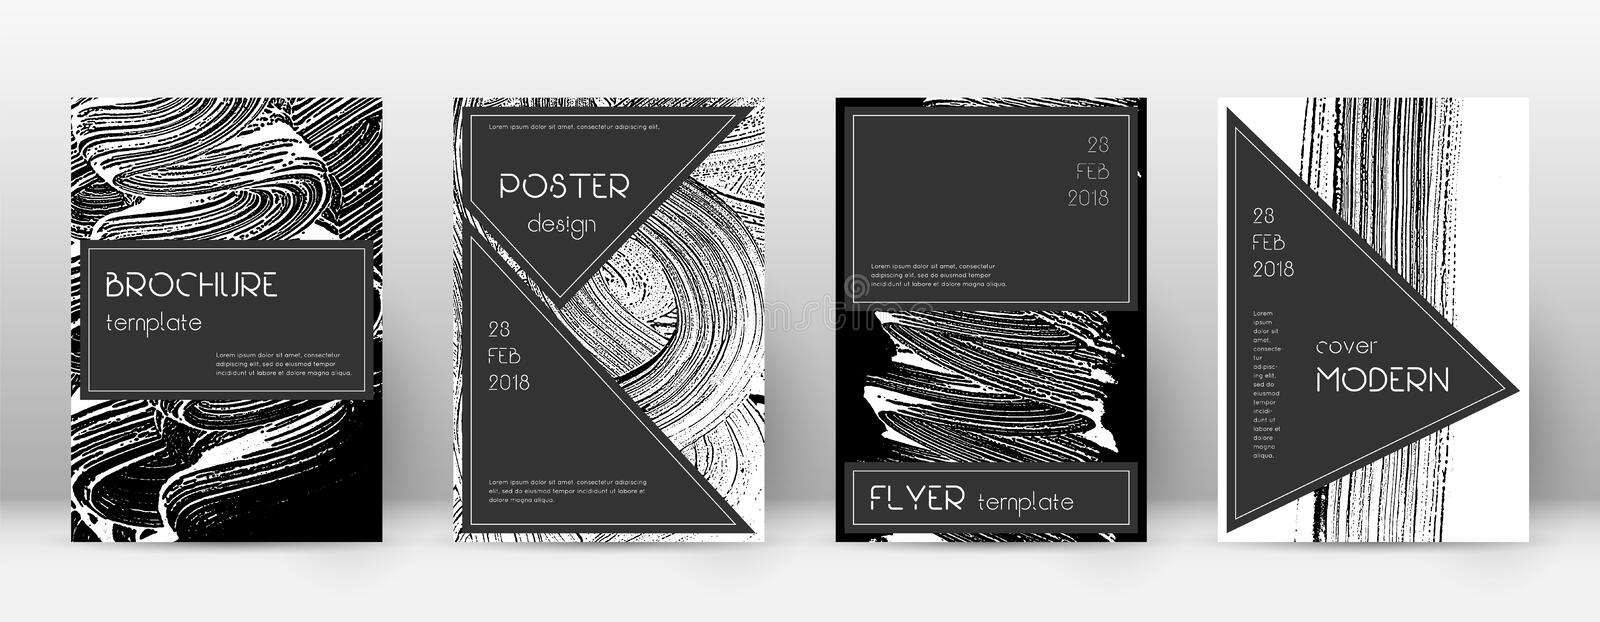 Cover page design template. Black brochure layout. Beauteous trendy abstract cover page. Black and w. Hite grunge texture background. Neat poster vector illustration